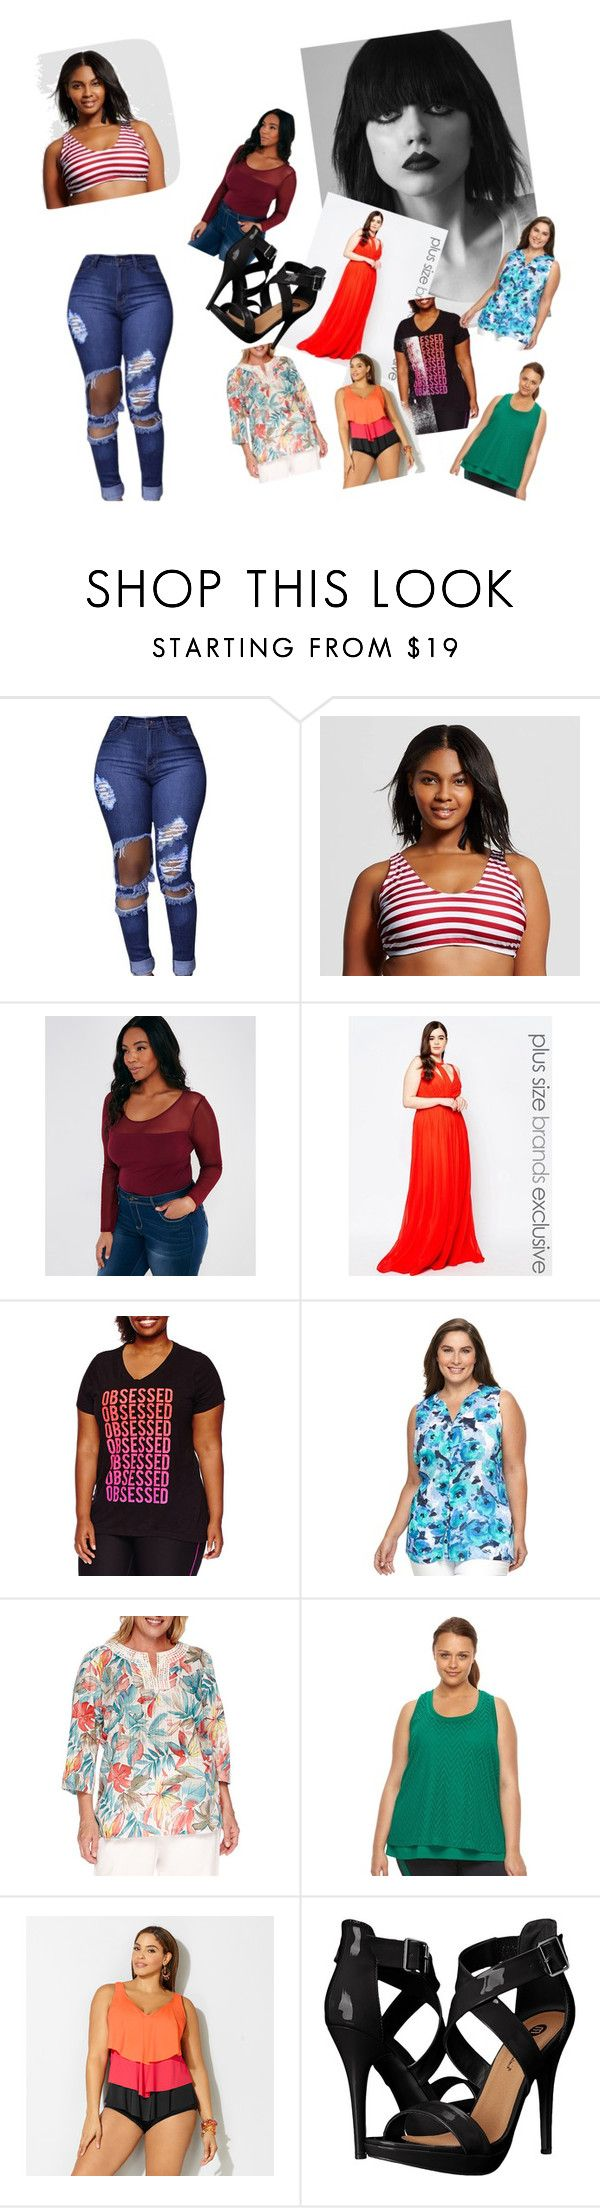 """plus size"" by softic-23 ❤ liked on Polyvore featuring Forever Unique, Xersion, Croft & Barrow, Alfred Dunner, Fila, Avenue, Michael Antonio and plus size clothing"